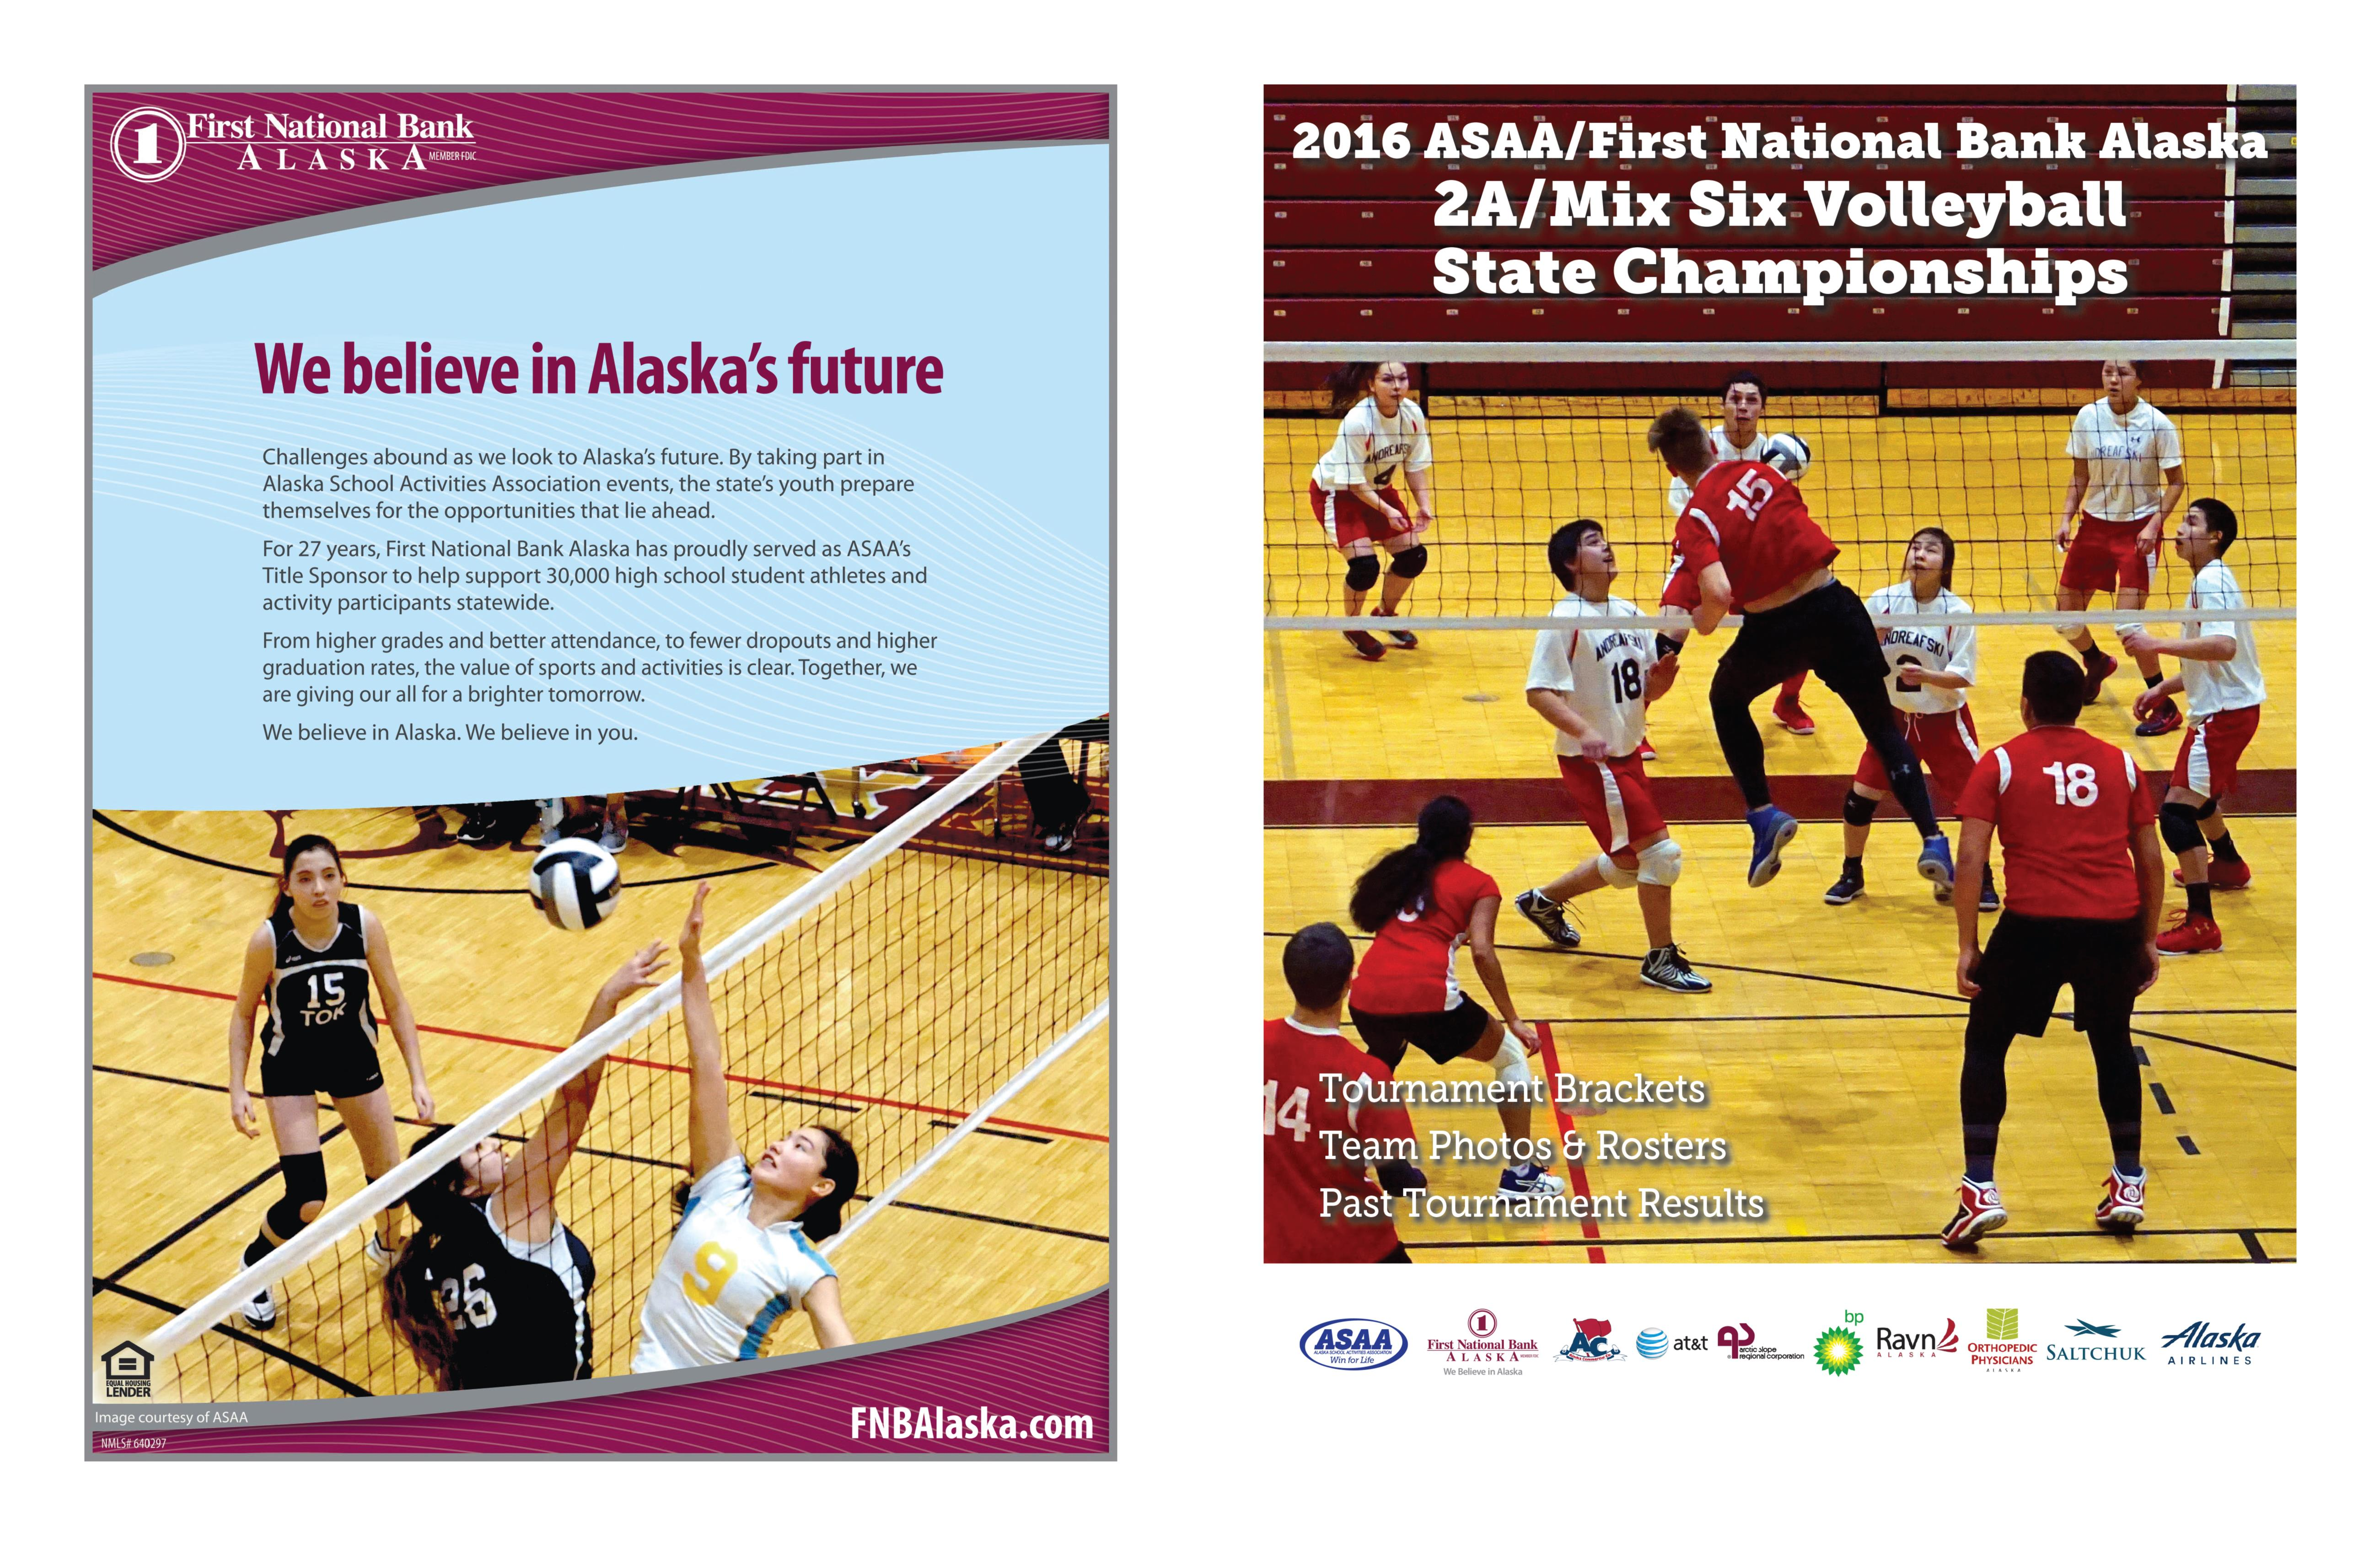 2016 ASAA/First National Bank Alaska 2A/Mix Six Volleyball State Championships Program cover image